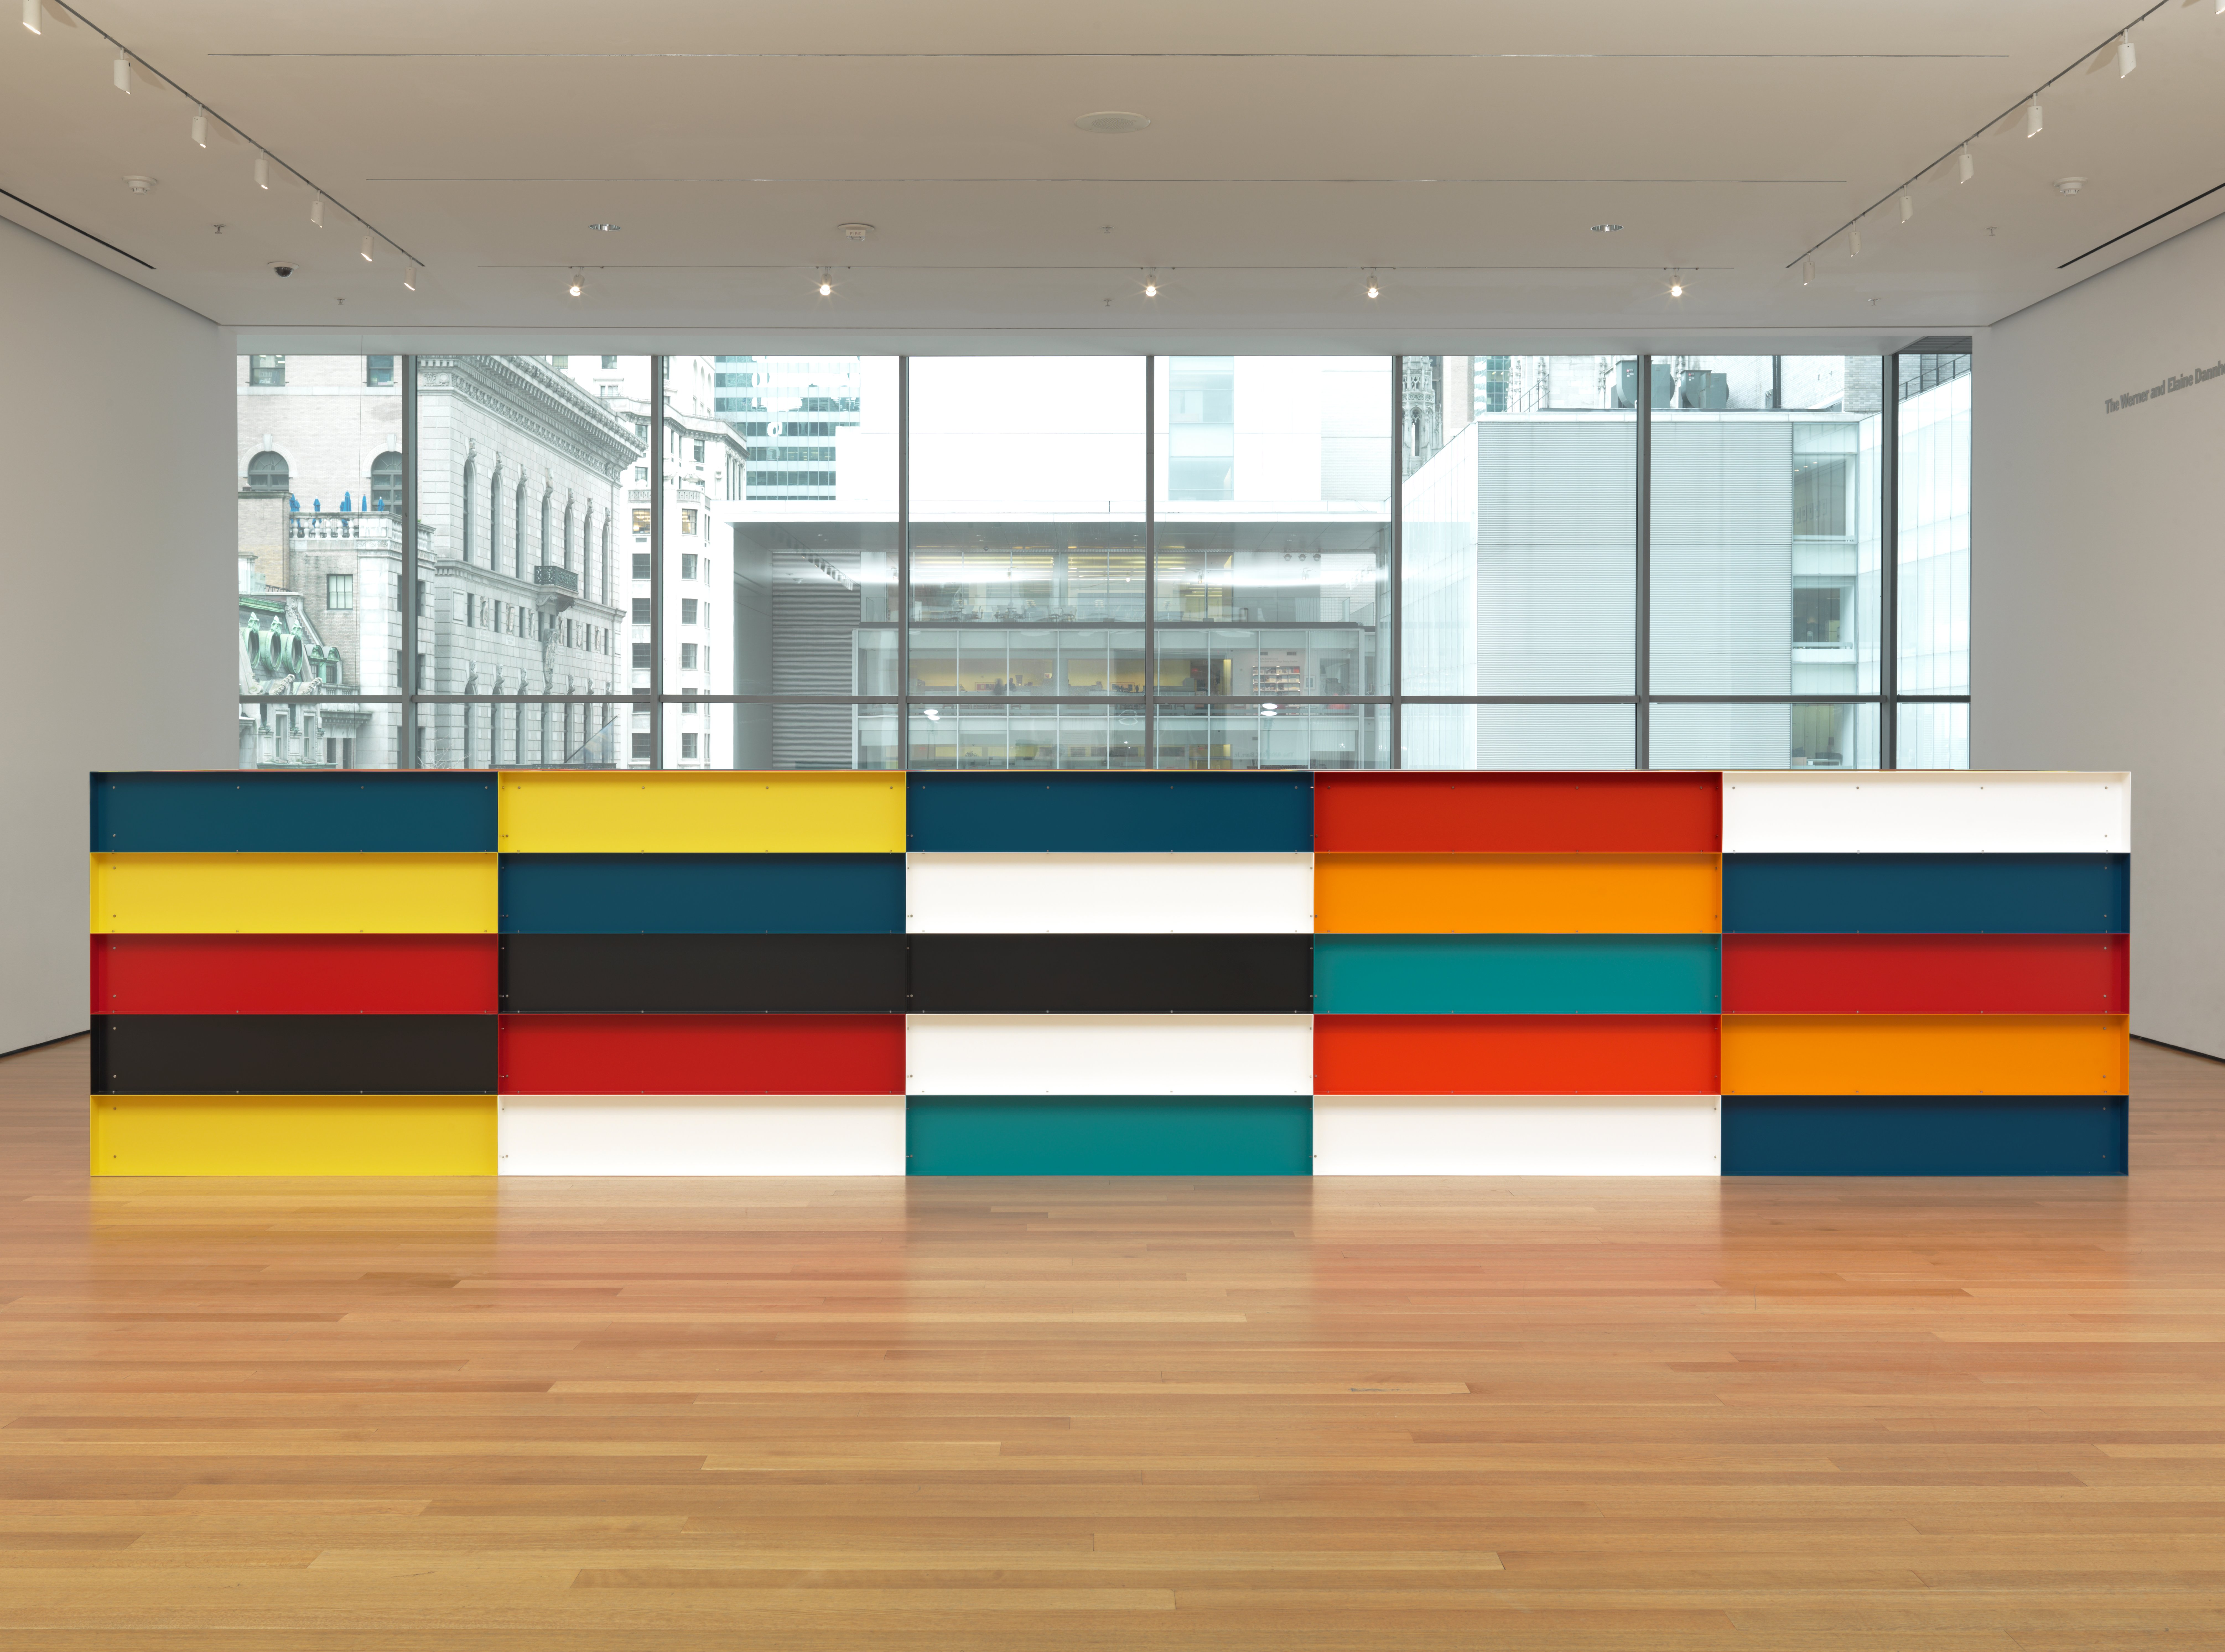 Donald Judd (American, 1928–1994). Untitled. 1991. Painted aluminum, 59″ x 24′ 7 1/4″ x 65″ (150 x 750 x 165 cm) Bequest of Richard S. Zeisler and gift of Abby Aldrich Rockefeller (both by exchange) and gift of Kathy Fuld, Agnes Gund, Patricia Cisneros, Doris Fisher, Mimi Haas, Marie-Josée and Henry R. Kravis, and Emily Spiegel. © Judd Foundation, licensed by VAGA, New York